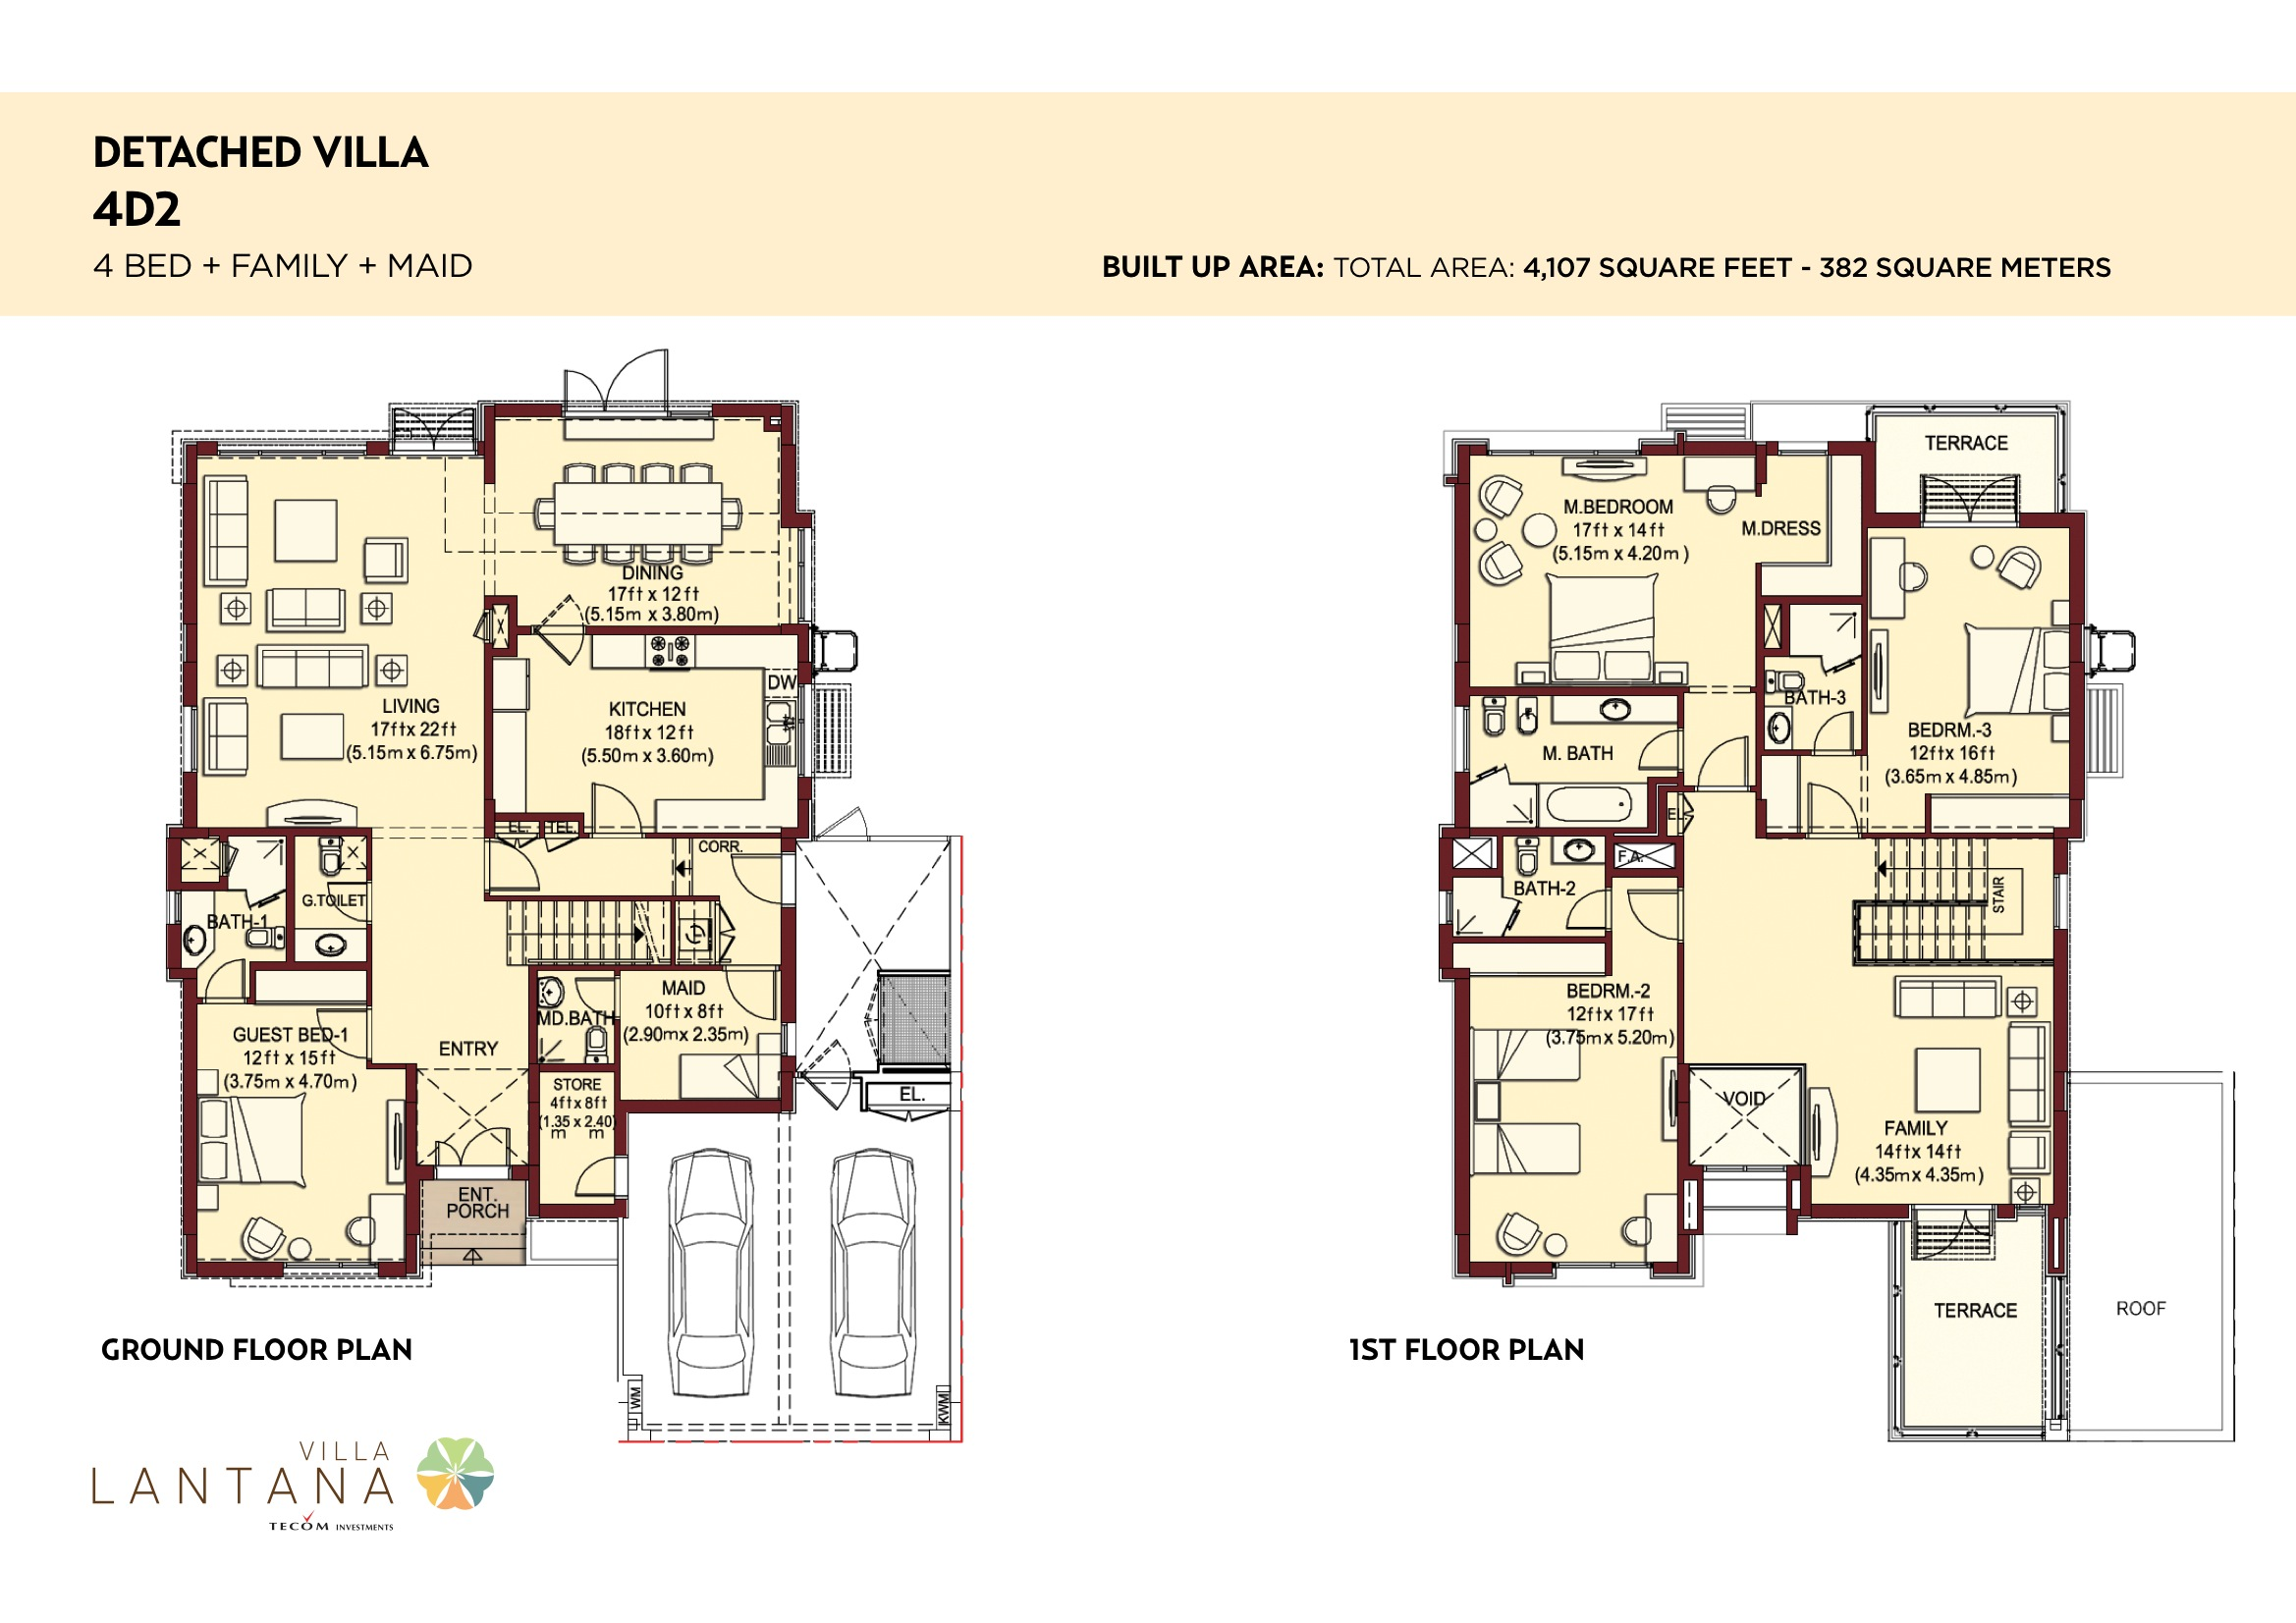 Villa lantana floorplans jumeirah village circle jvc dubai for Floor plans jumeirah heights